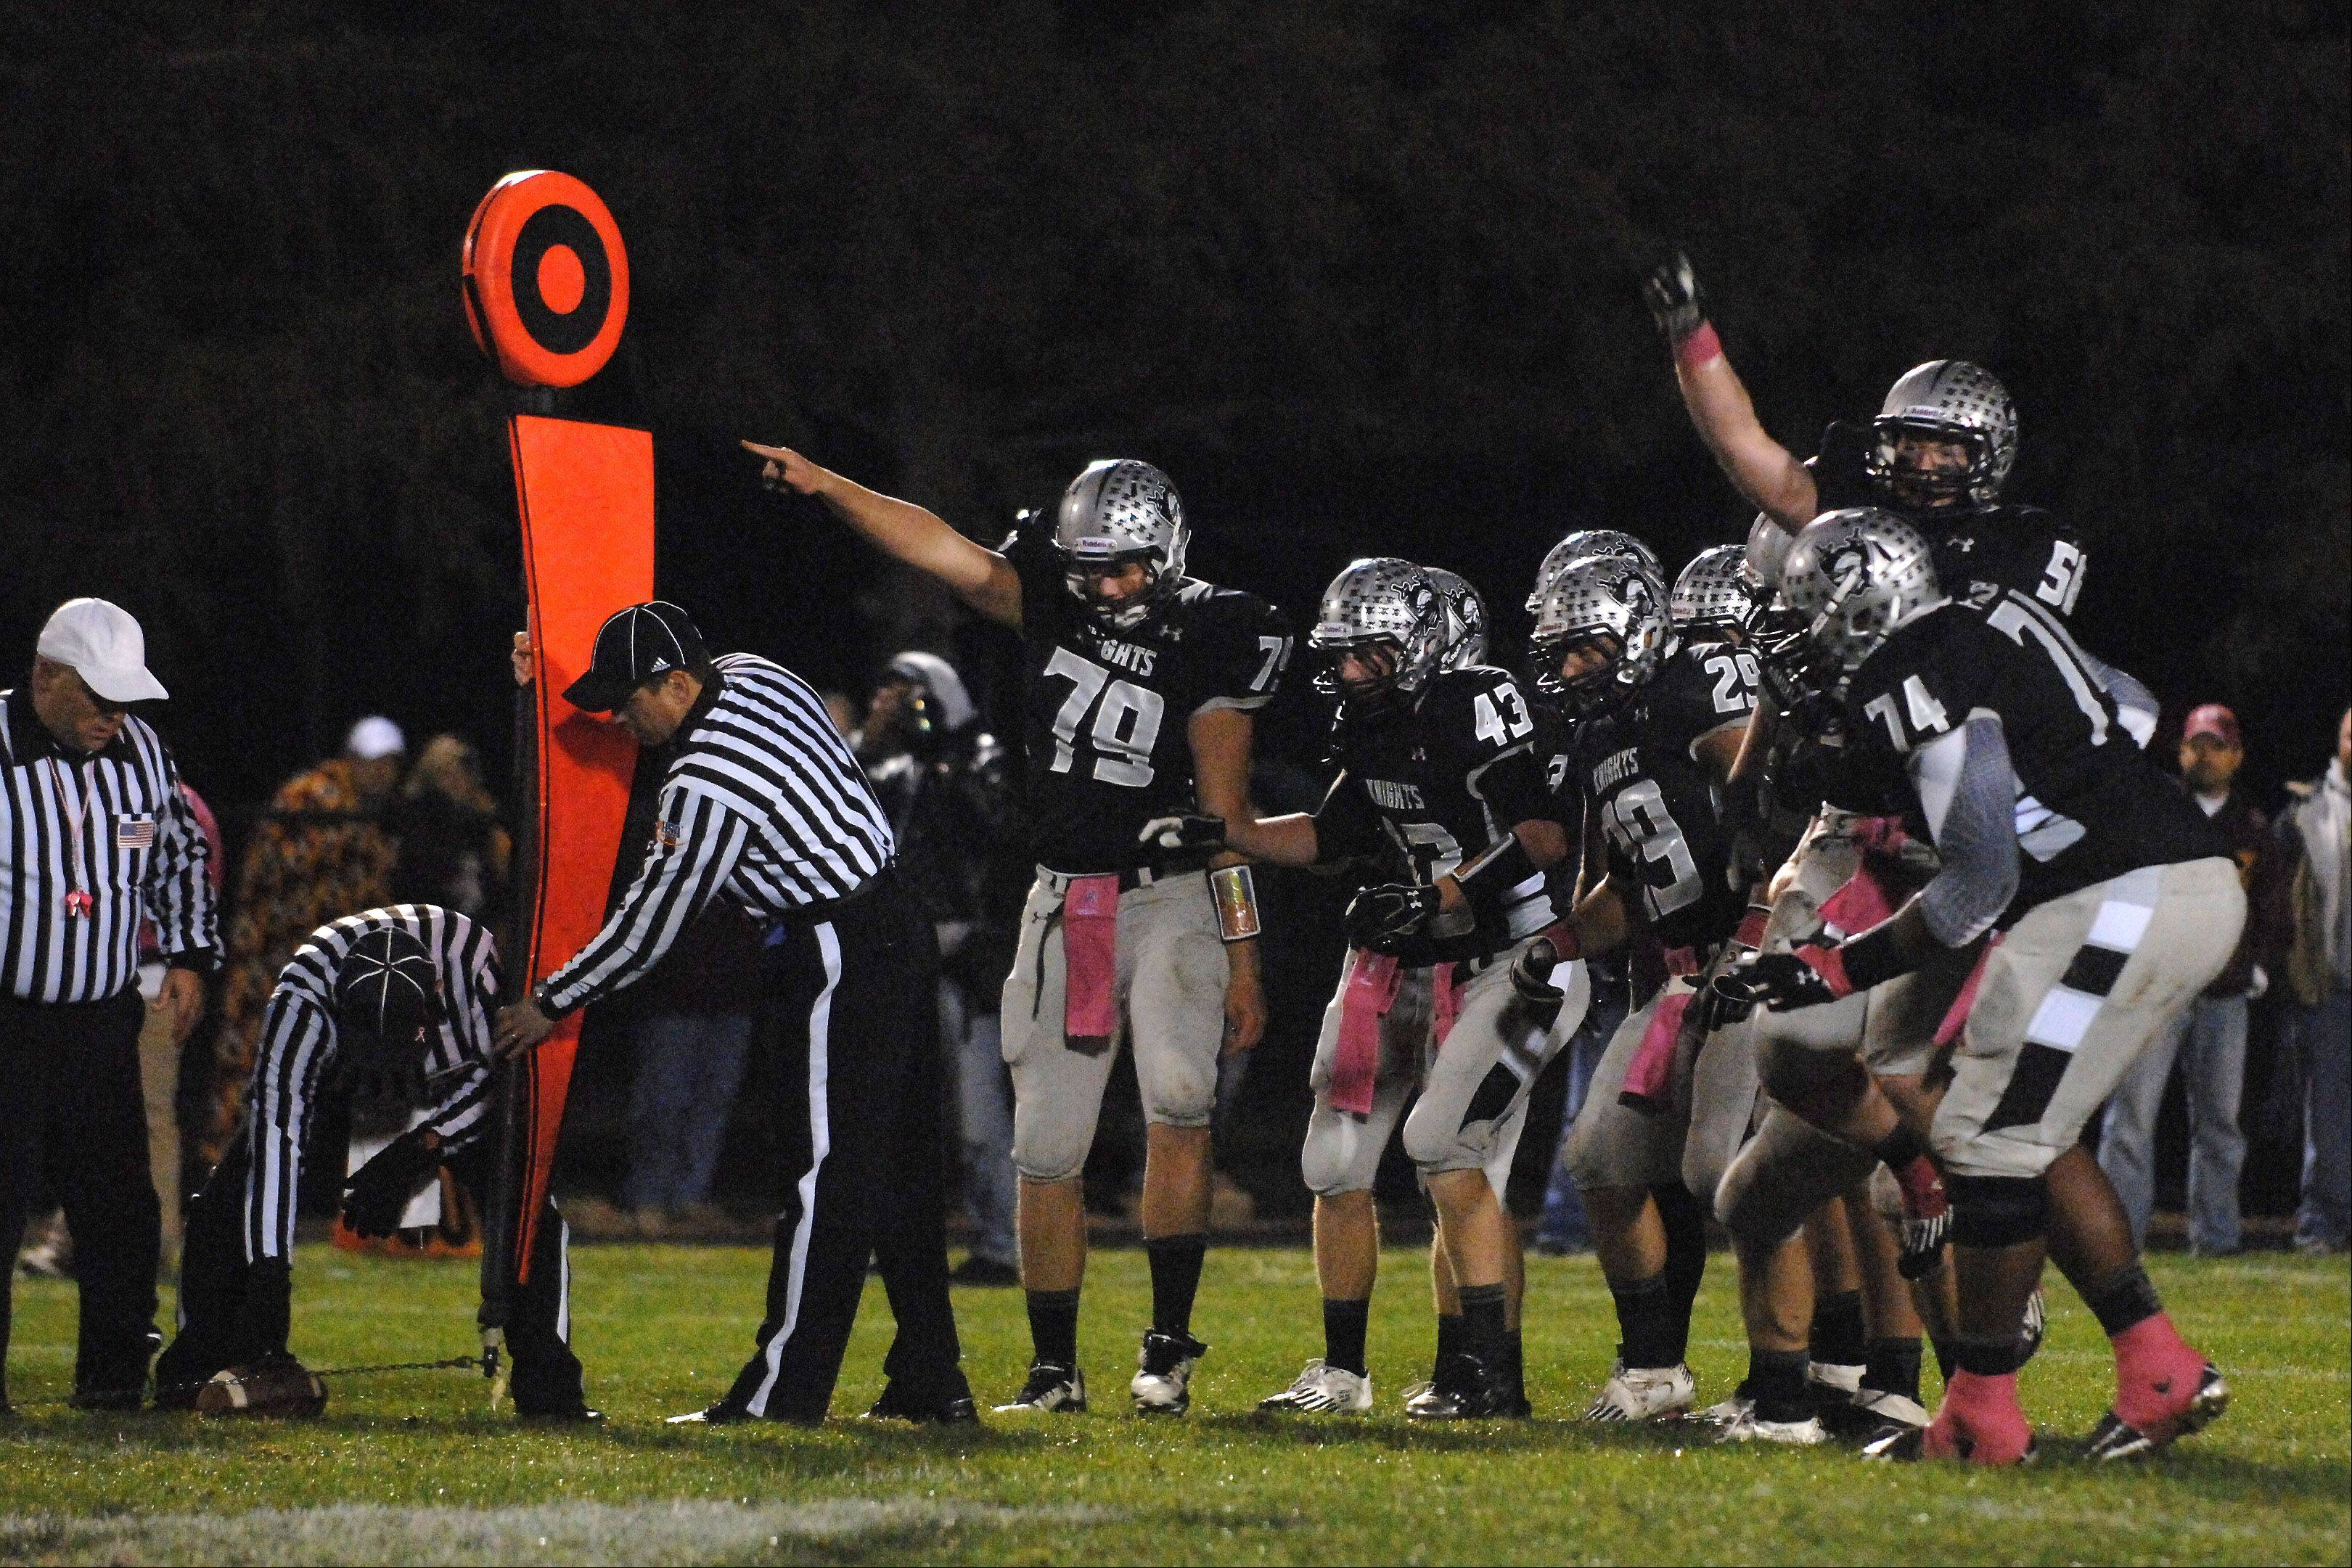 The Kaneland defense watches the chains to see they stopped Morris on a fourth down during the first quarter.